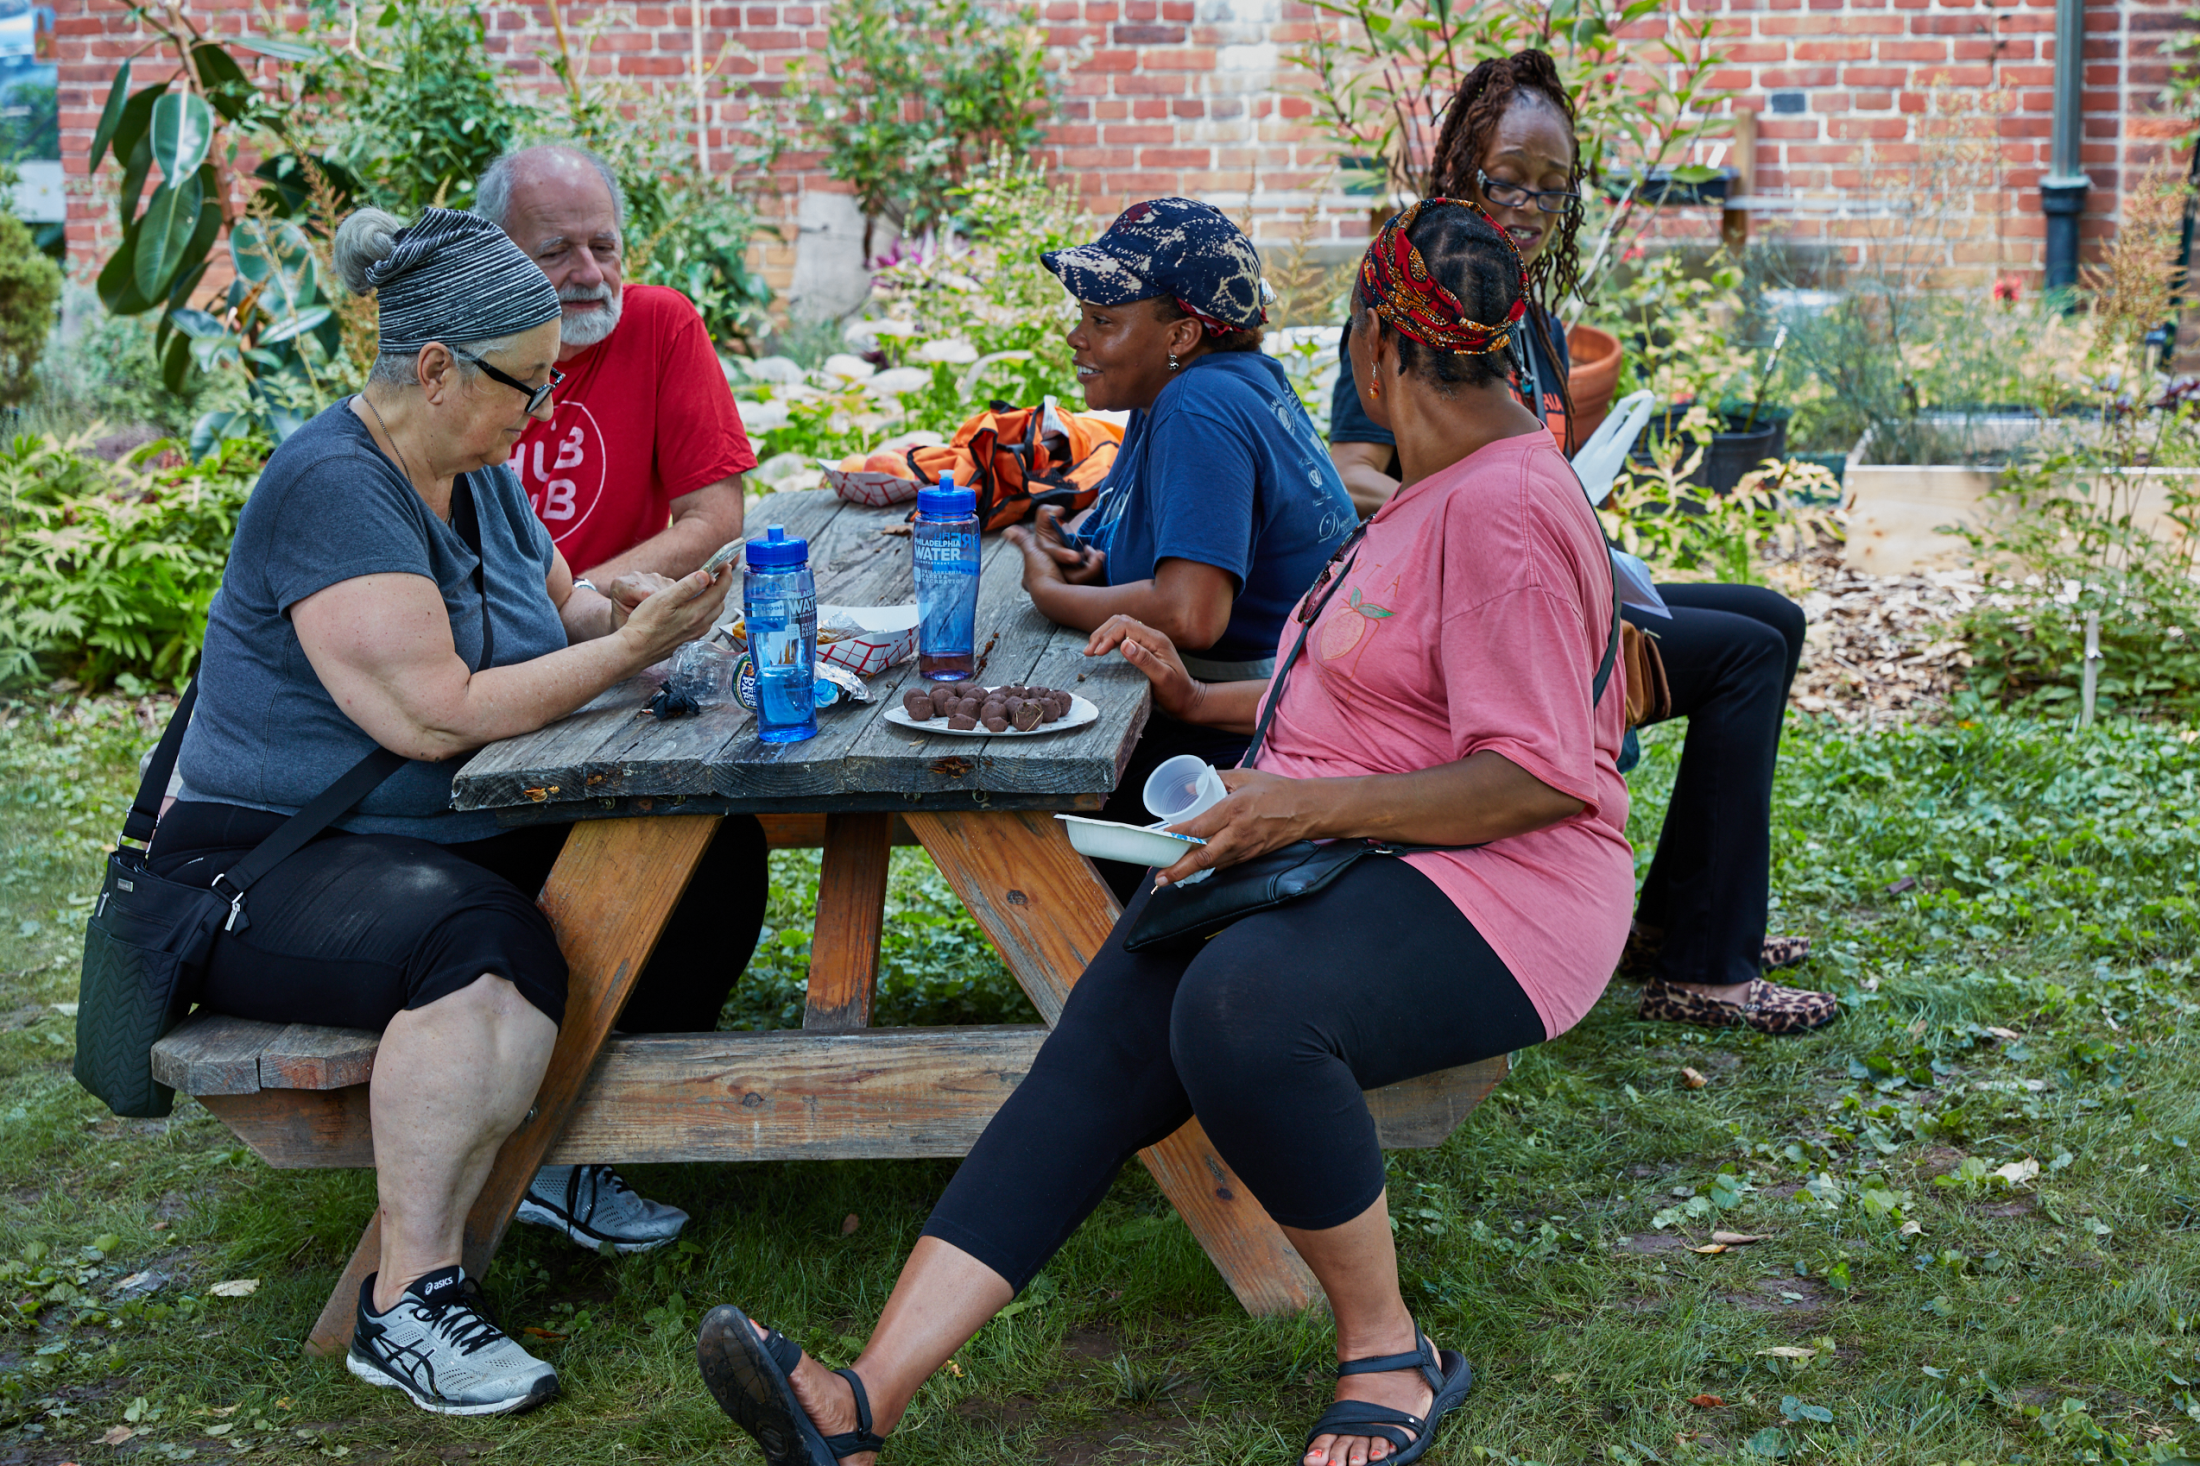 Art and Documentary Photography - Loading 04-08-18_WoodfordMansion-PeachFestival_564.png